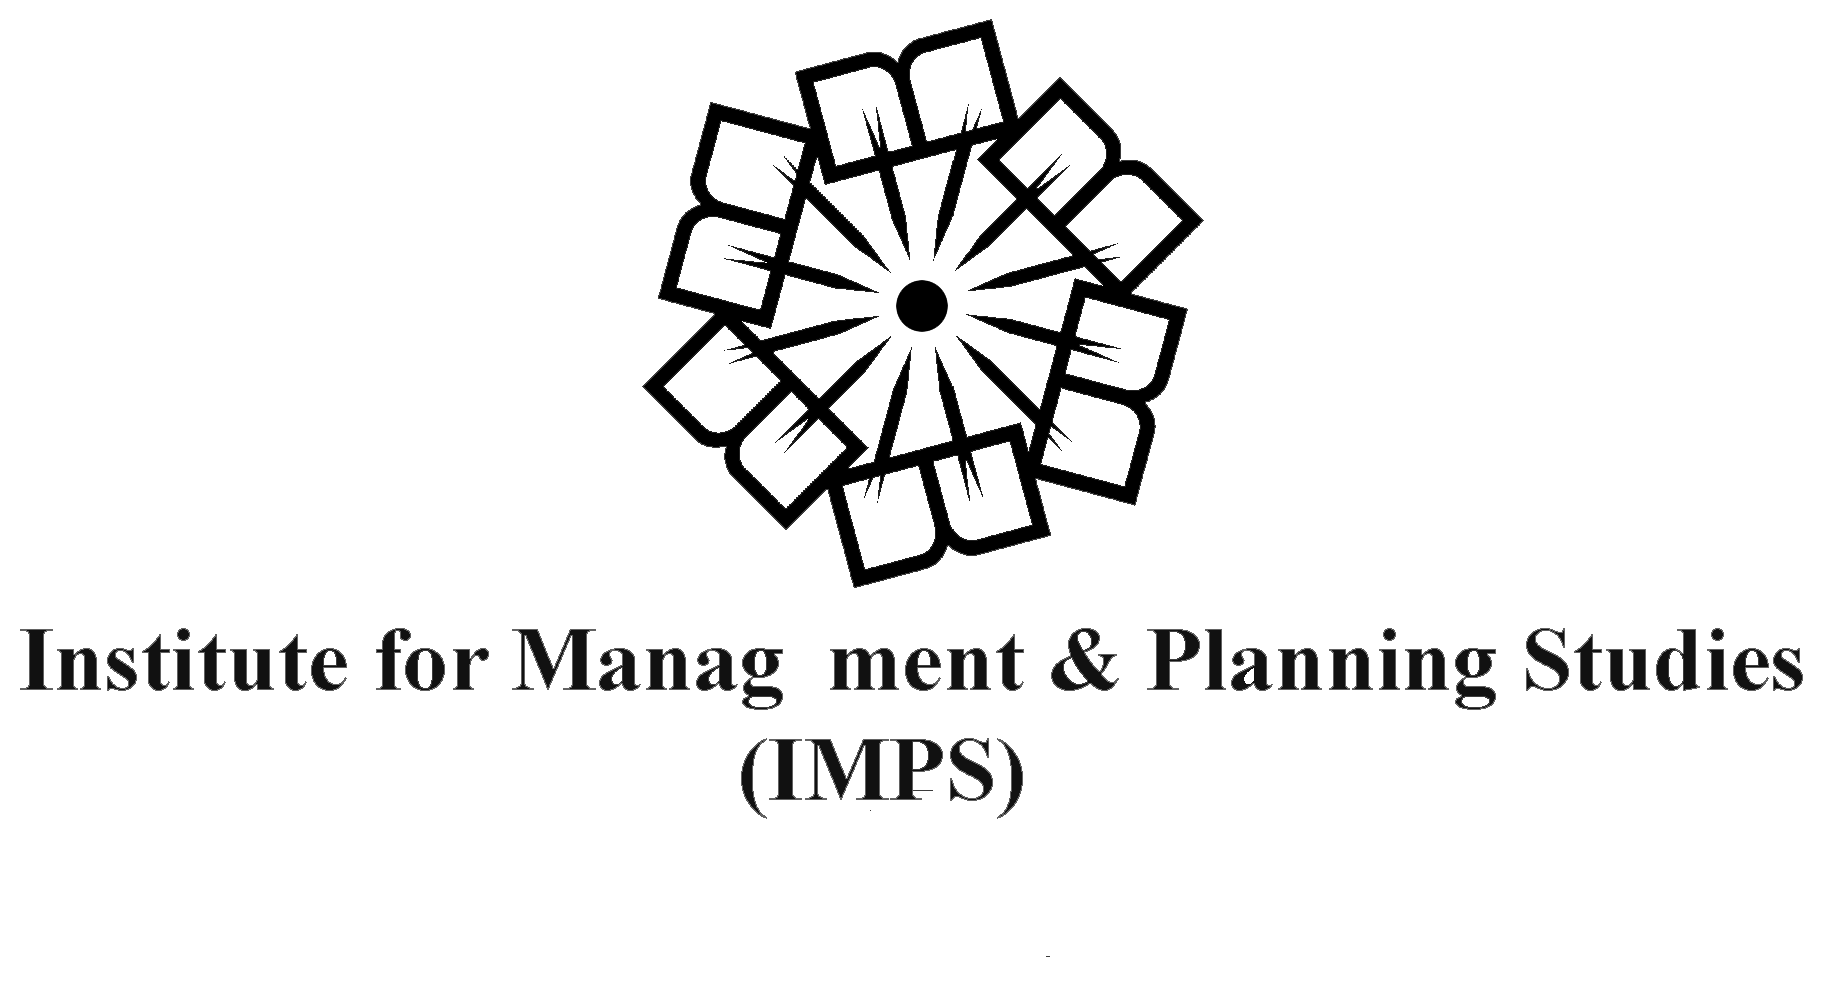 Journal for Management and Development Process